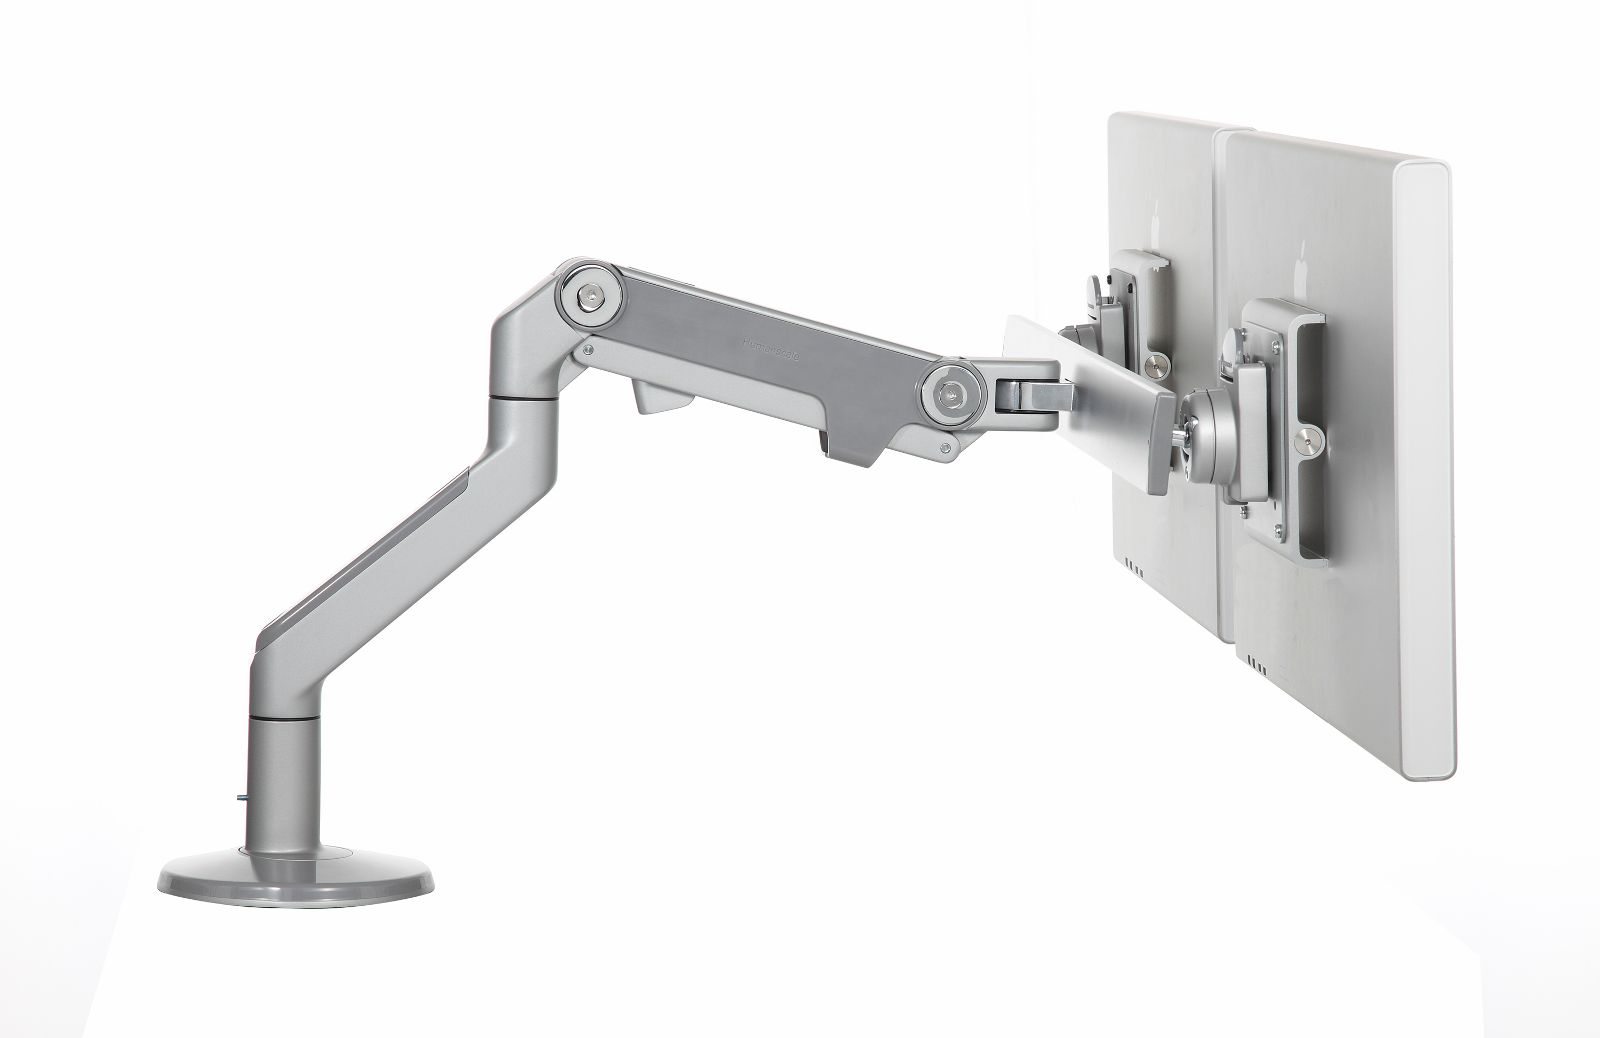 M8 With Crossbar Adjustable Monitor Arm From Humanscale